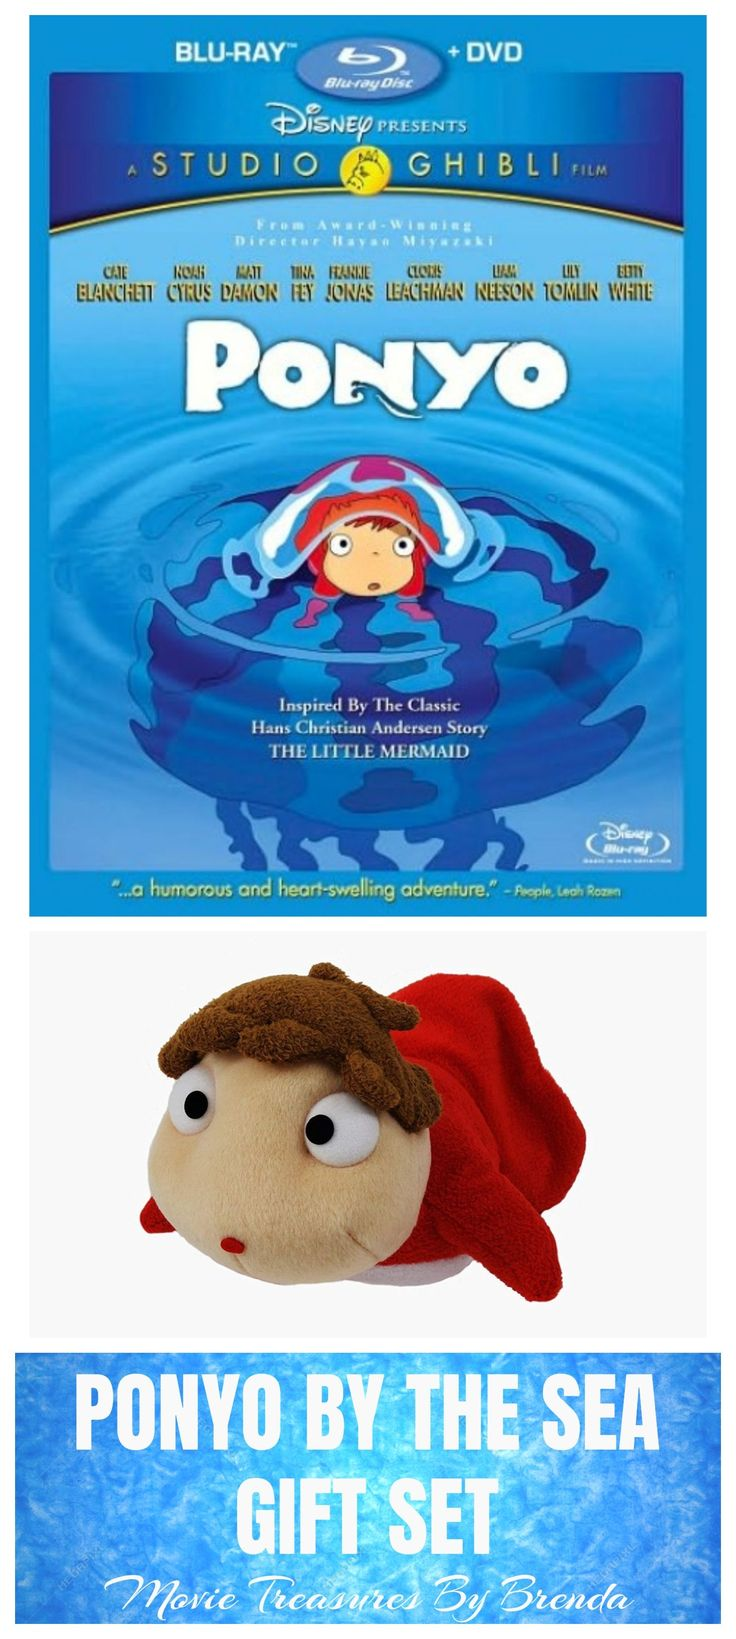 A fun Ponyo by the Sea themed gift set for the Studio Ghibli fan in your life